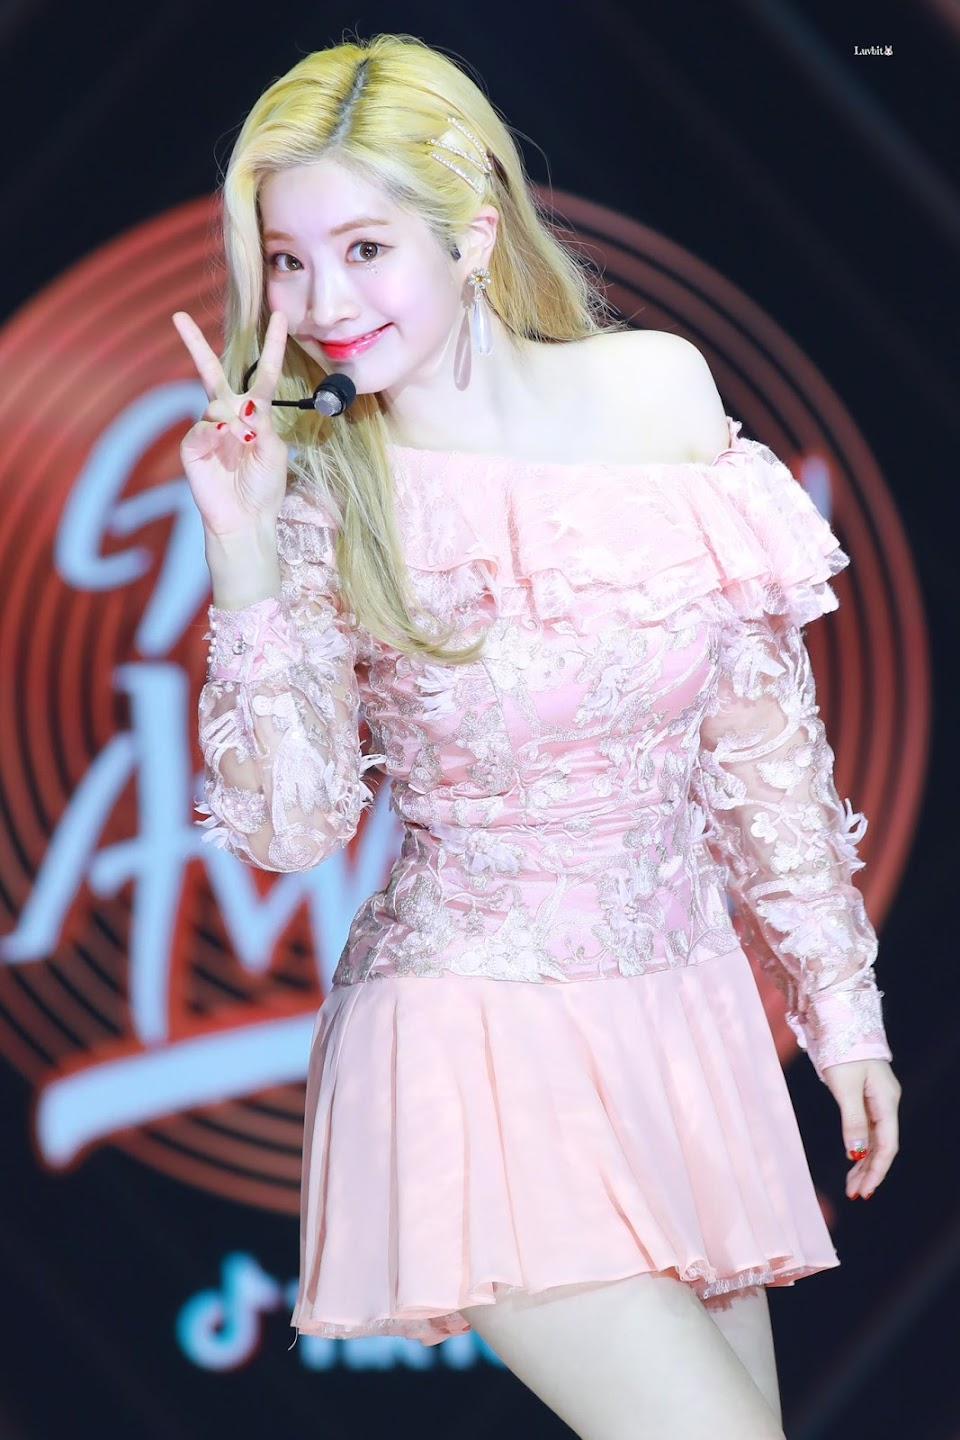 dahyun shoulder 17